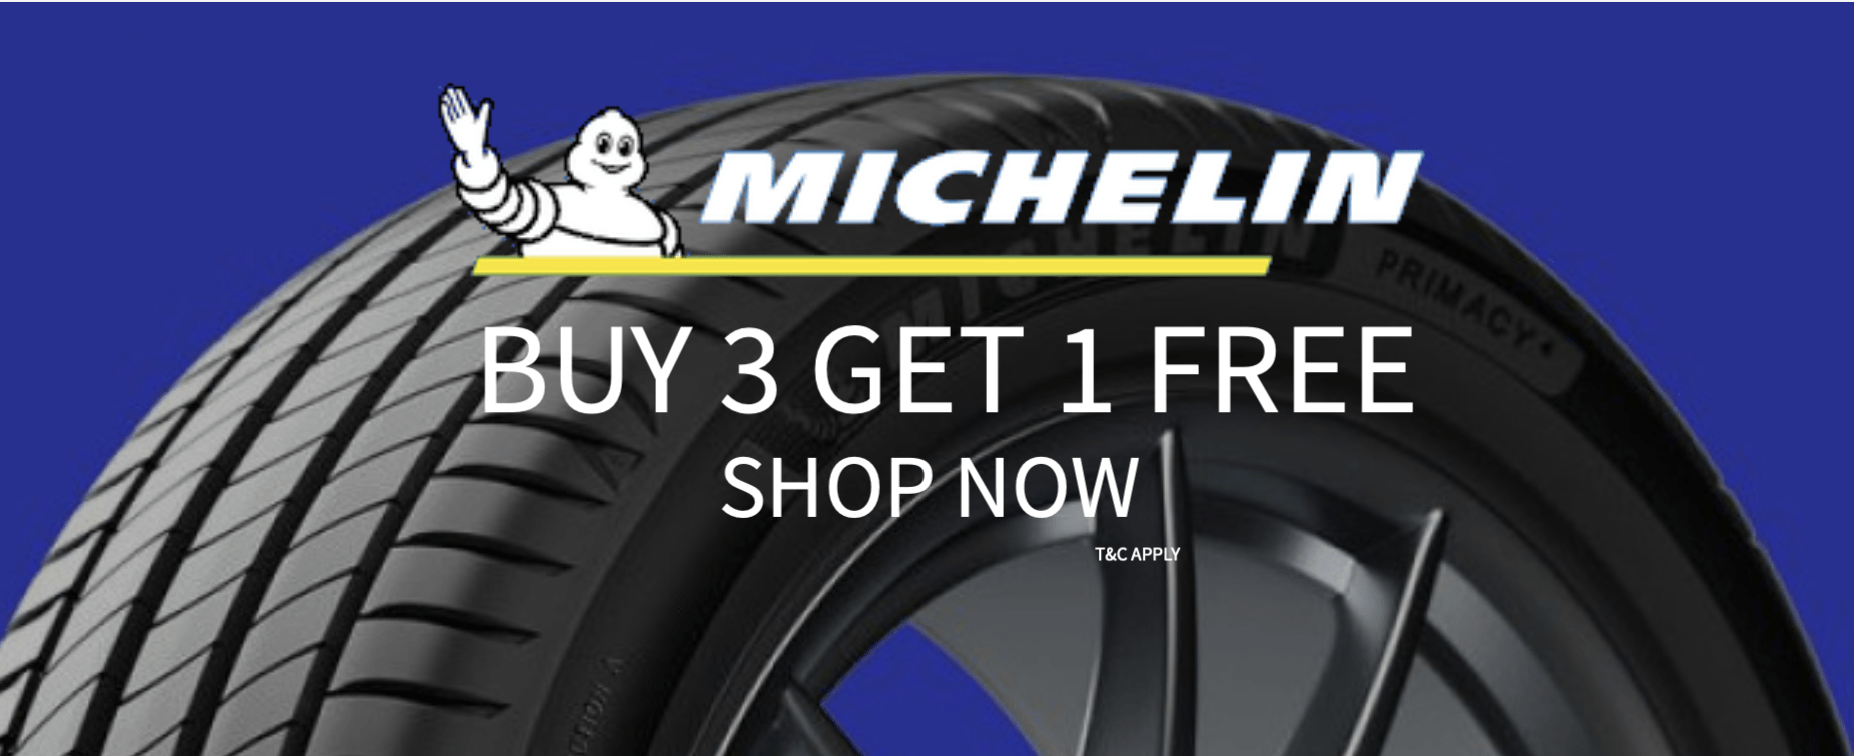 🔥🔥Book your vehicle #Tyres | #Wheels | #Service with our #NorthShore Store and Grab a deal upto 40% OFF on selected tyres and wheels🔥🔥 Valley Tyres is an #independently owned #tyre and #wheel retail shop. We stock new tyres and alloy wheels for #BMW, #Ford, #Audi, #Holden, #Nissan, #Toyota and other manufacturers including #Mazda, Hyundai, #Honda, Kia, Porsche and Mercedes Benz. We have wide range of tyres from #Michelin, #TOYO, #Continental, Yokohama, #Pirelli, Nankang, #Dunlop, #Firestone, #Kumho, #Goodride, BF Goodrich in fact any brand you prefer. Run Flat Tyres and 4×4 tyres. Our alloy wheel range includes wheels from #Advanti, #DTM, #BGW, #kudos , #forum & #nichewheels, #ROH, #Rhino and many more. Www.valleytyres.co.nz 19A Porana Road Wairau park Auckland 09 443 1243 021 TYRES 1